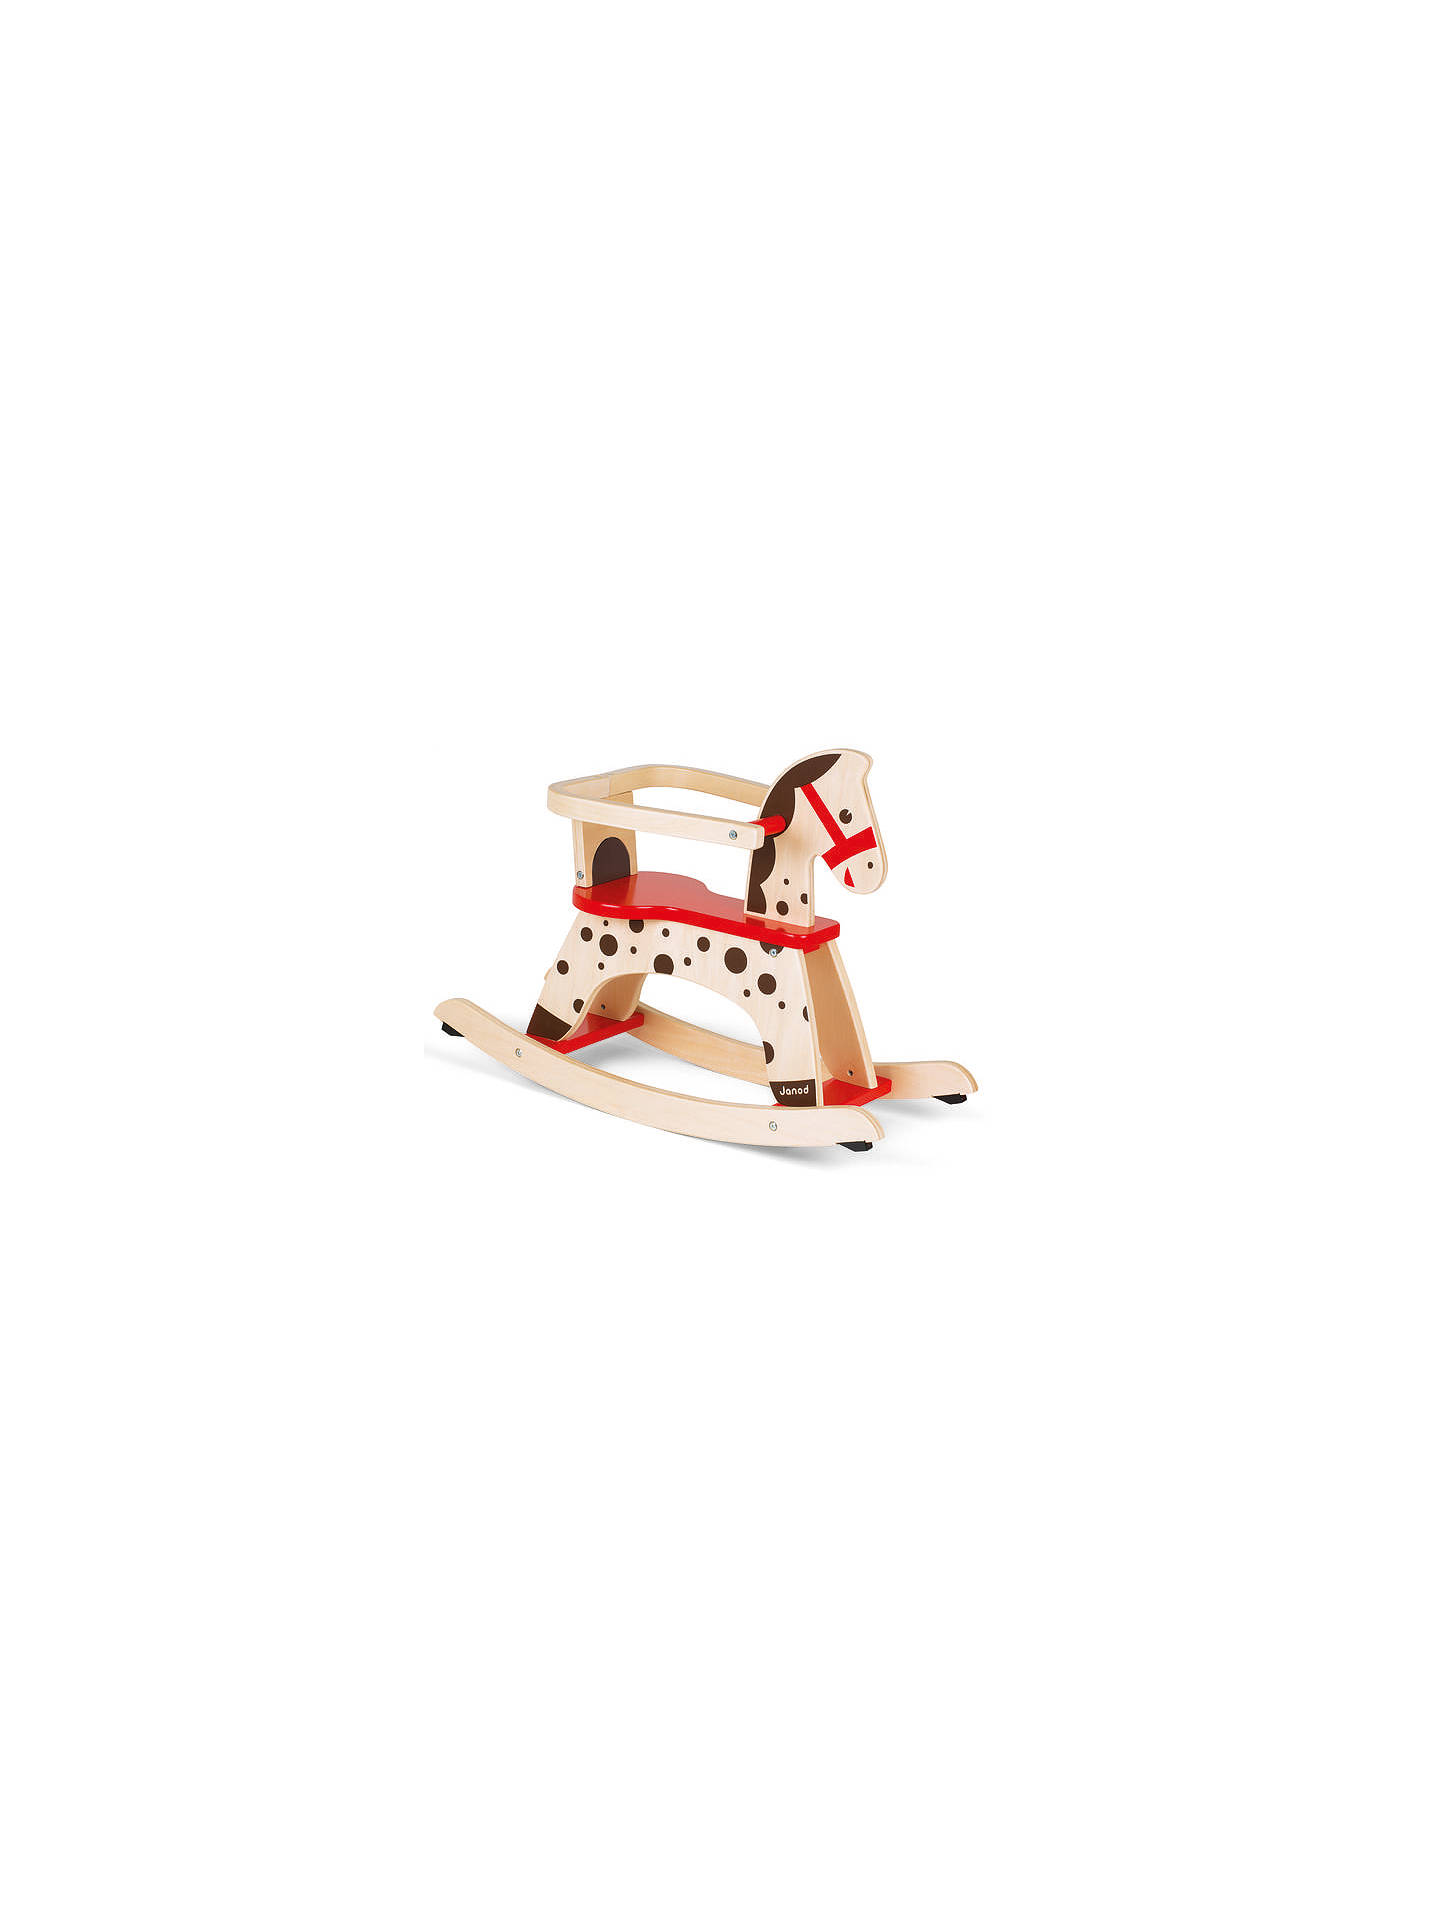 BuyJanod Caramel Rocking Horse Online at johnlewis.com